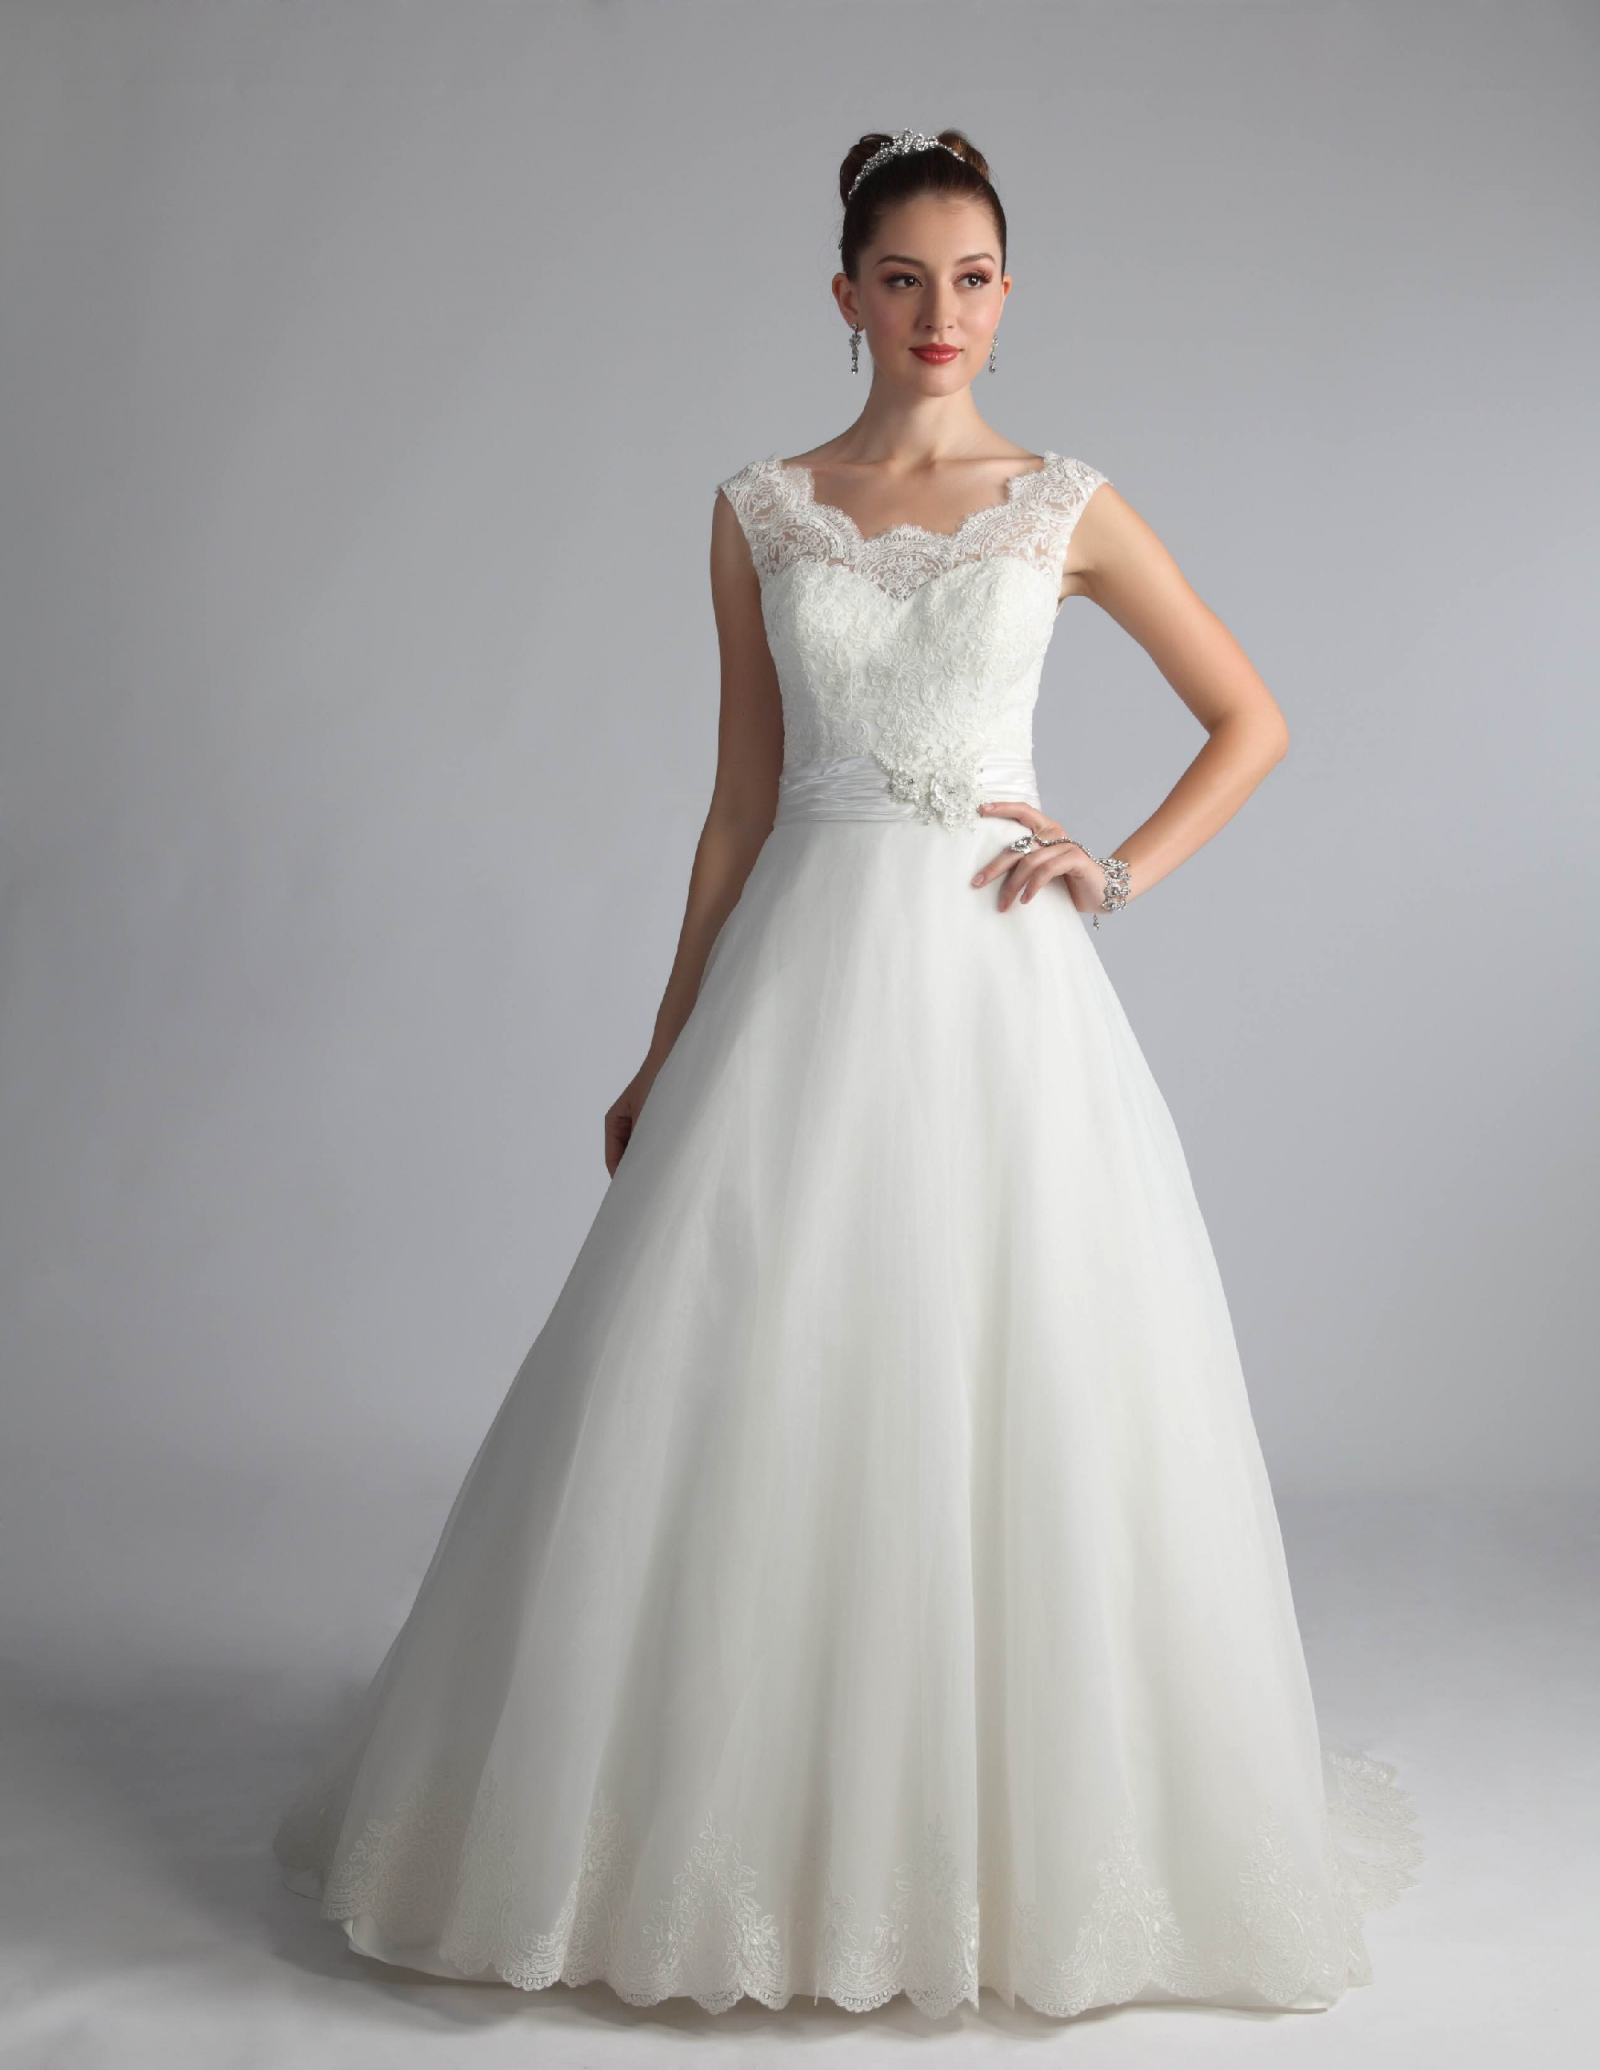 Narrow your Venus wedding dress search with our on page filters. You can sort by price, size, silhouette and so much more. And if you want even more wedding gown inspo, visit our Real Brides Gallery, Our Real Wedding Gallery and our Dresses We Love page (featuring our editors most favorite gowns).